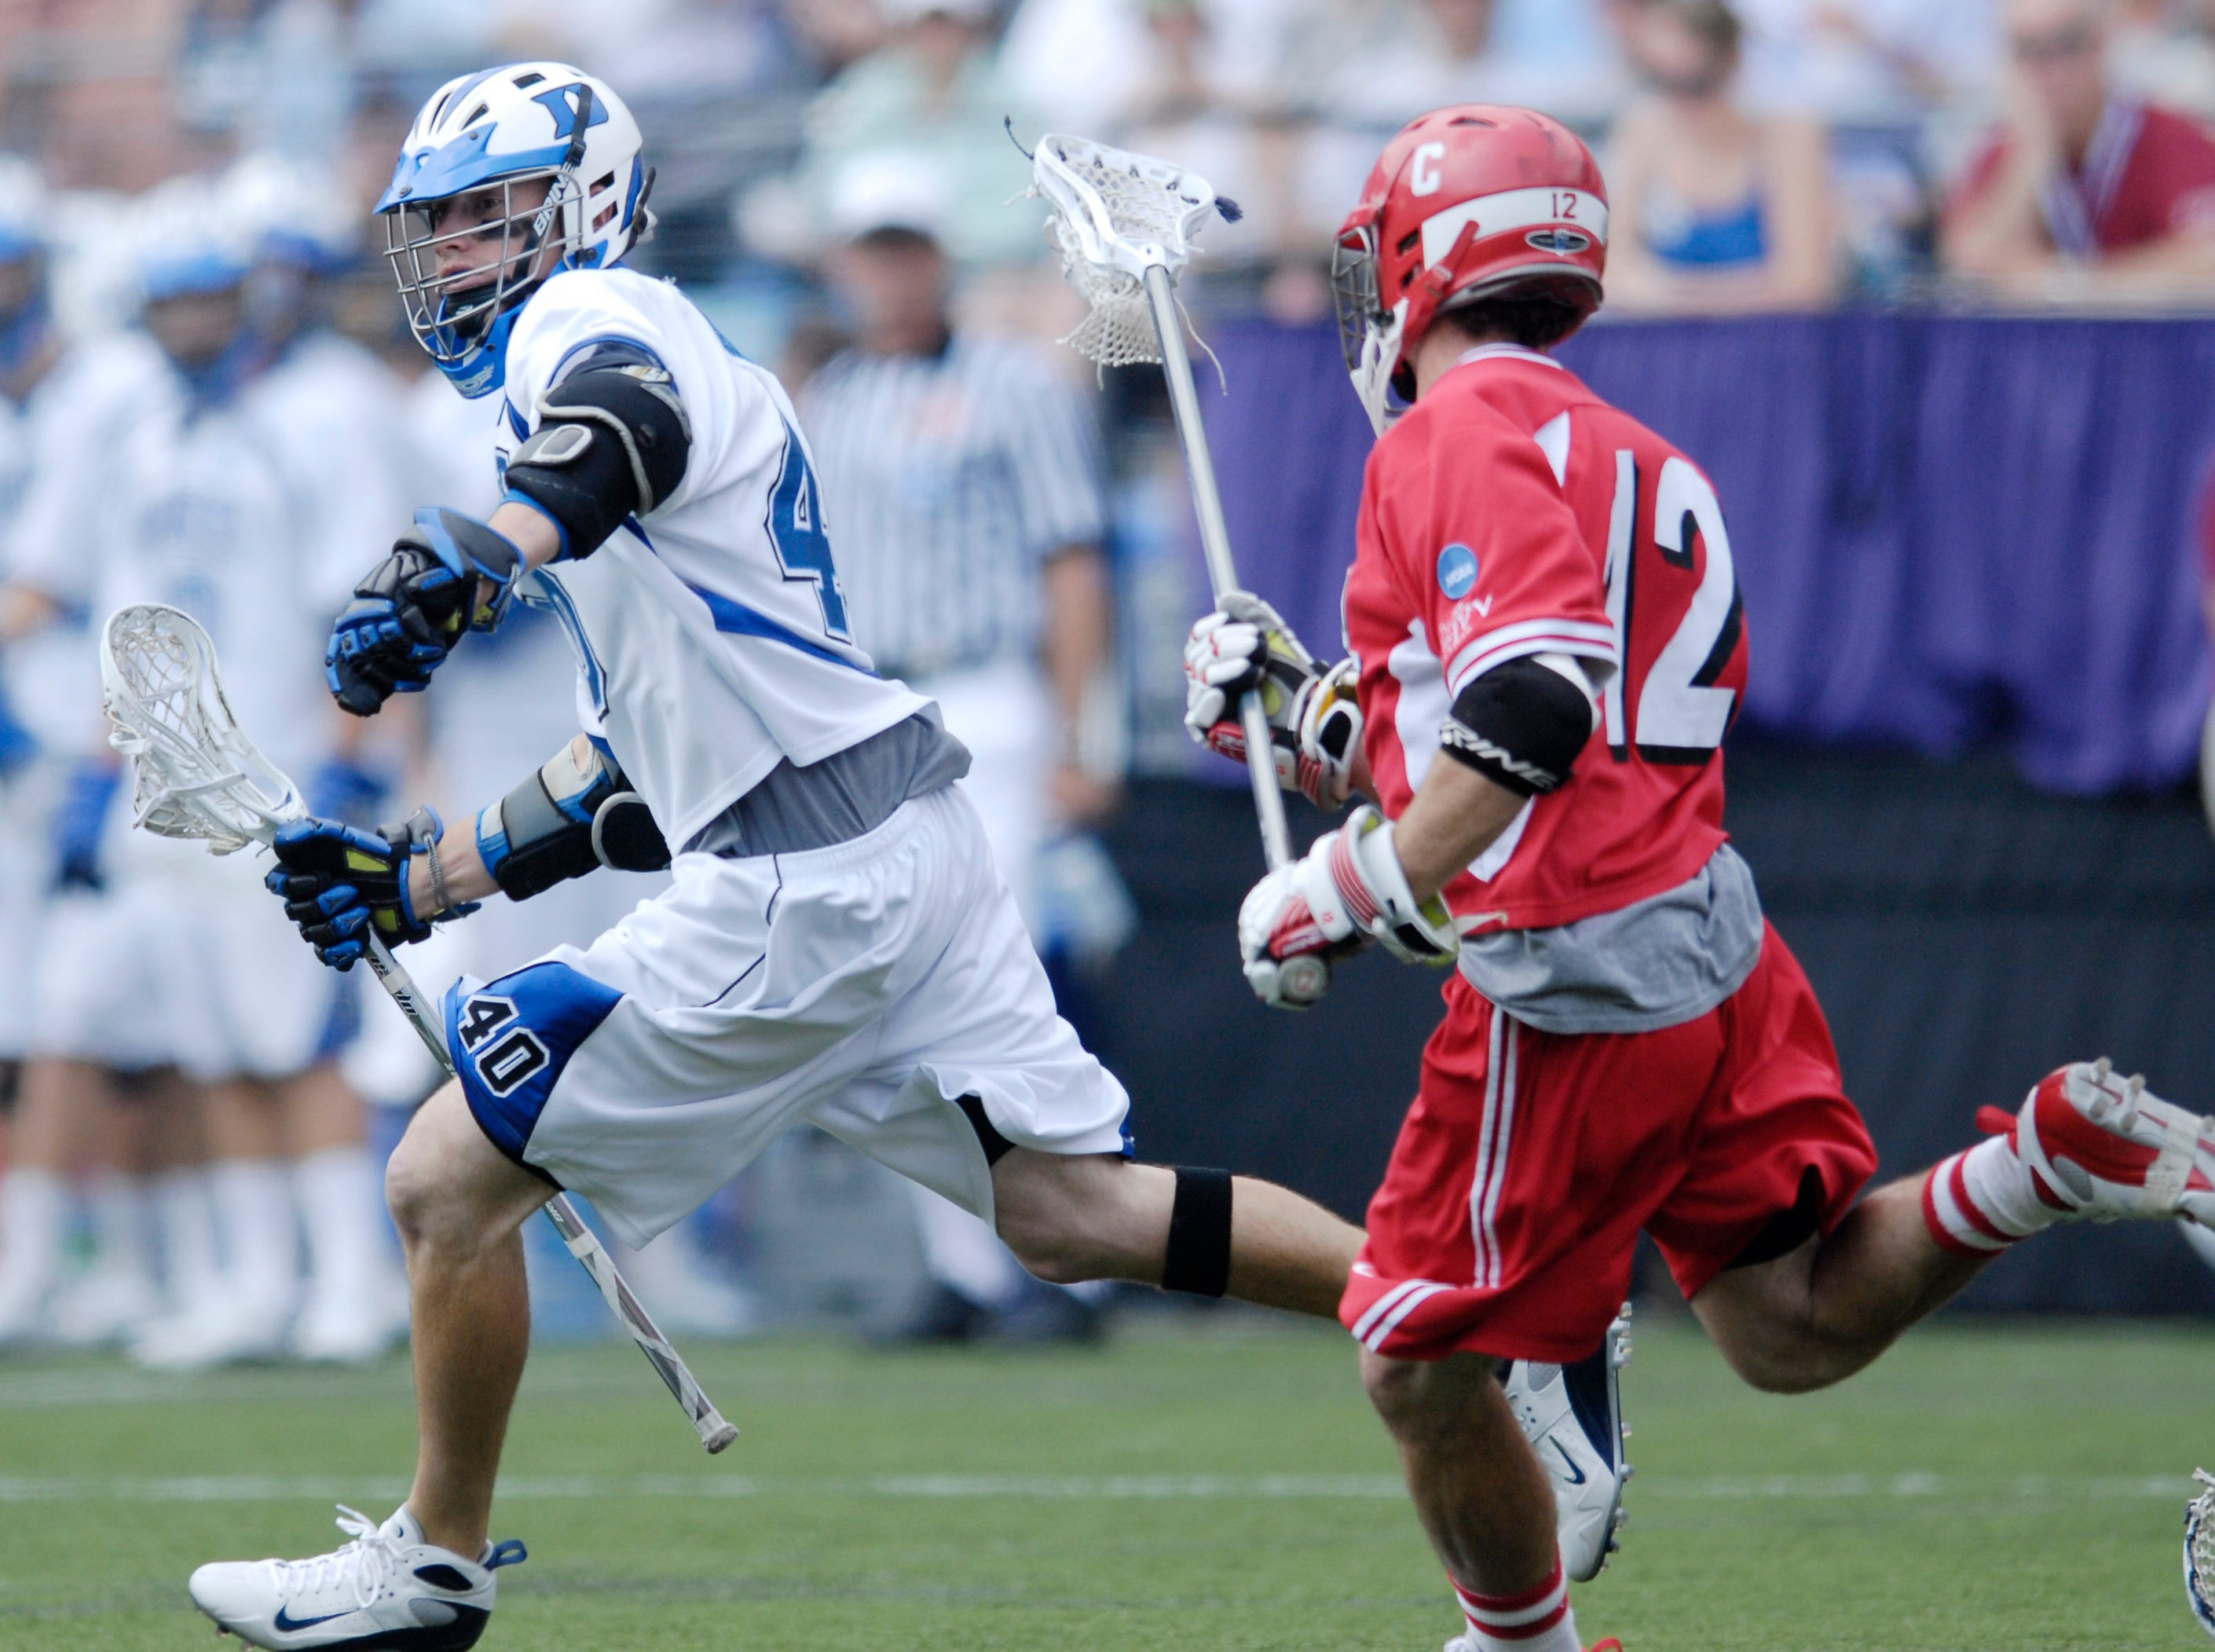 Duke's Matt Danowski (40) carries the ball past Cornell's Matt Moyer (12) during a division one NCAA lacrosse semifinal game, Saturday, May 26, 2007, in Baltimore.